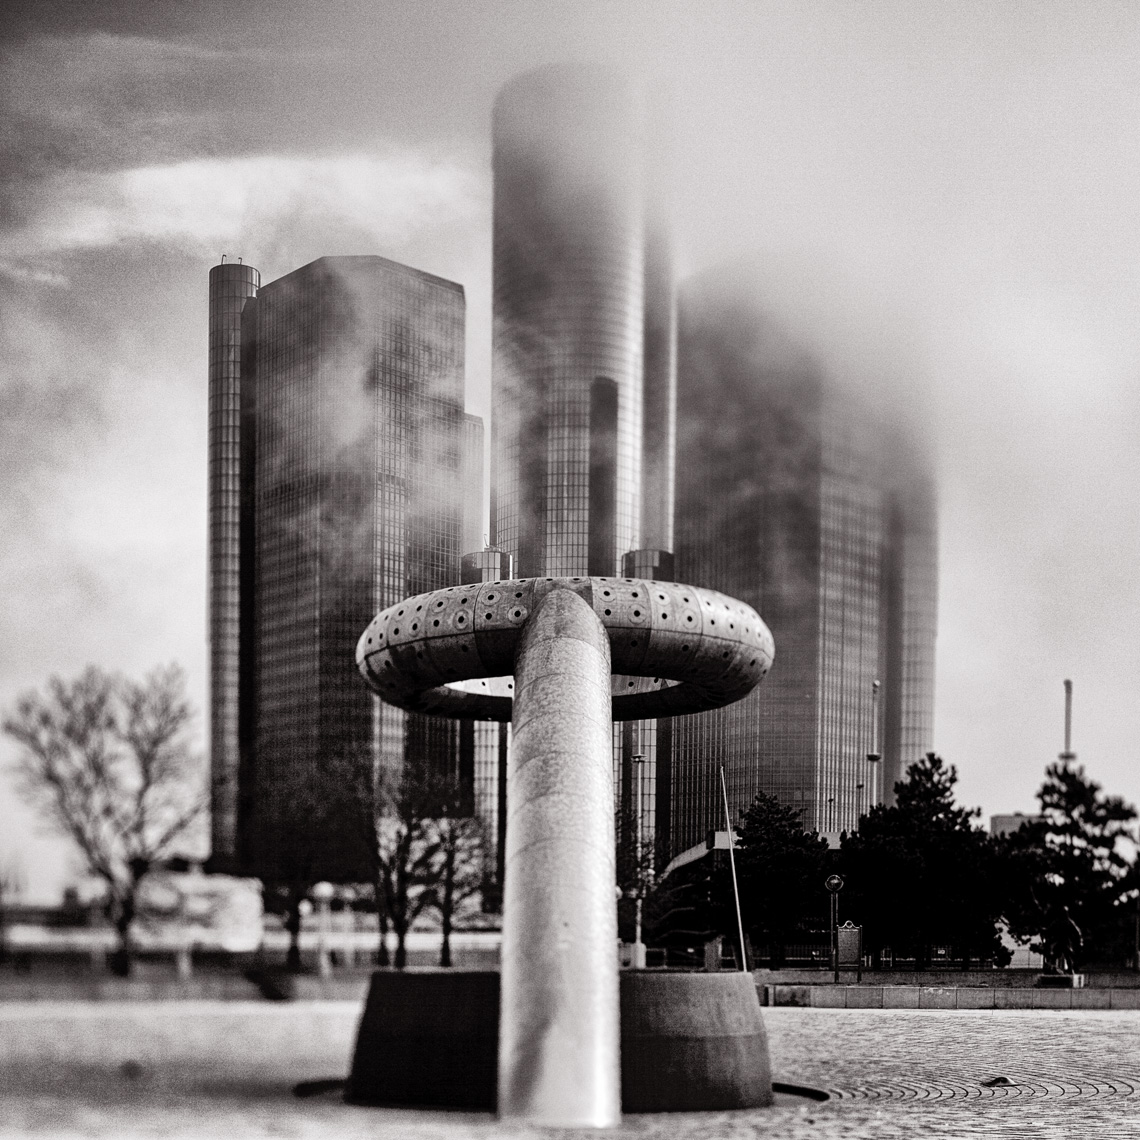 detroit_fog-7724-Edit-Edit.jpg